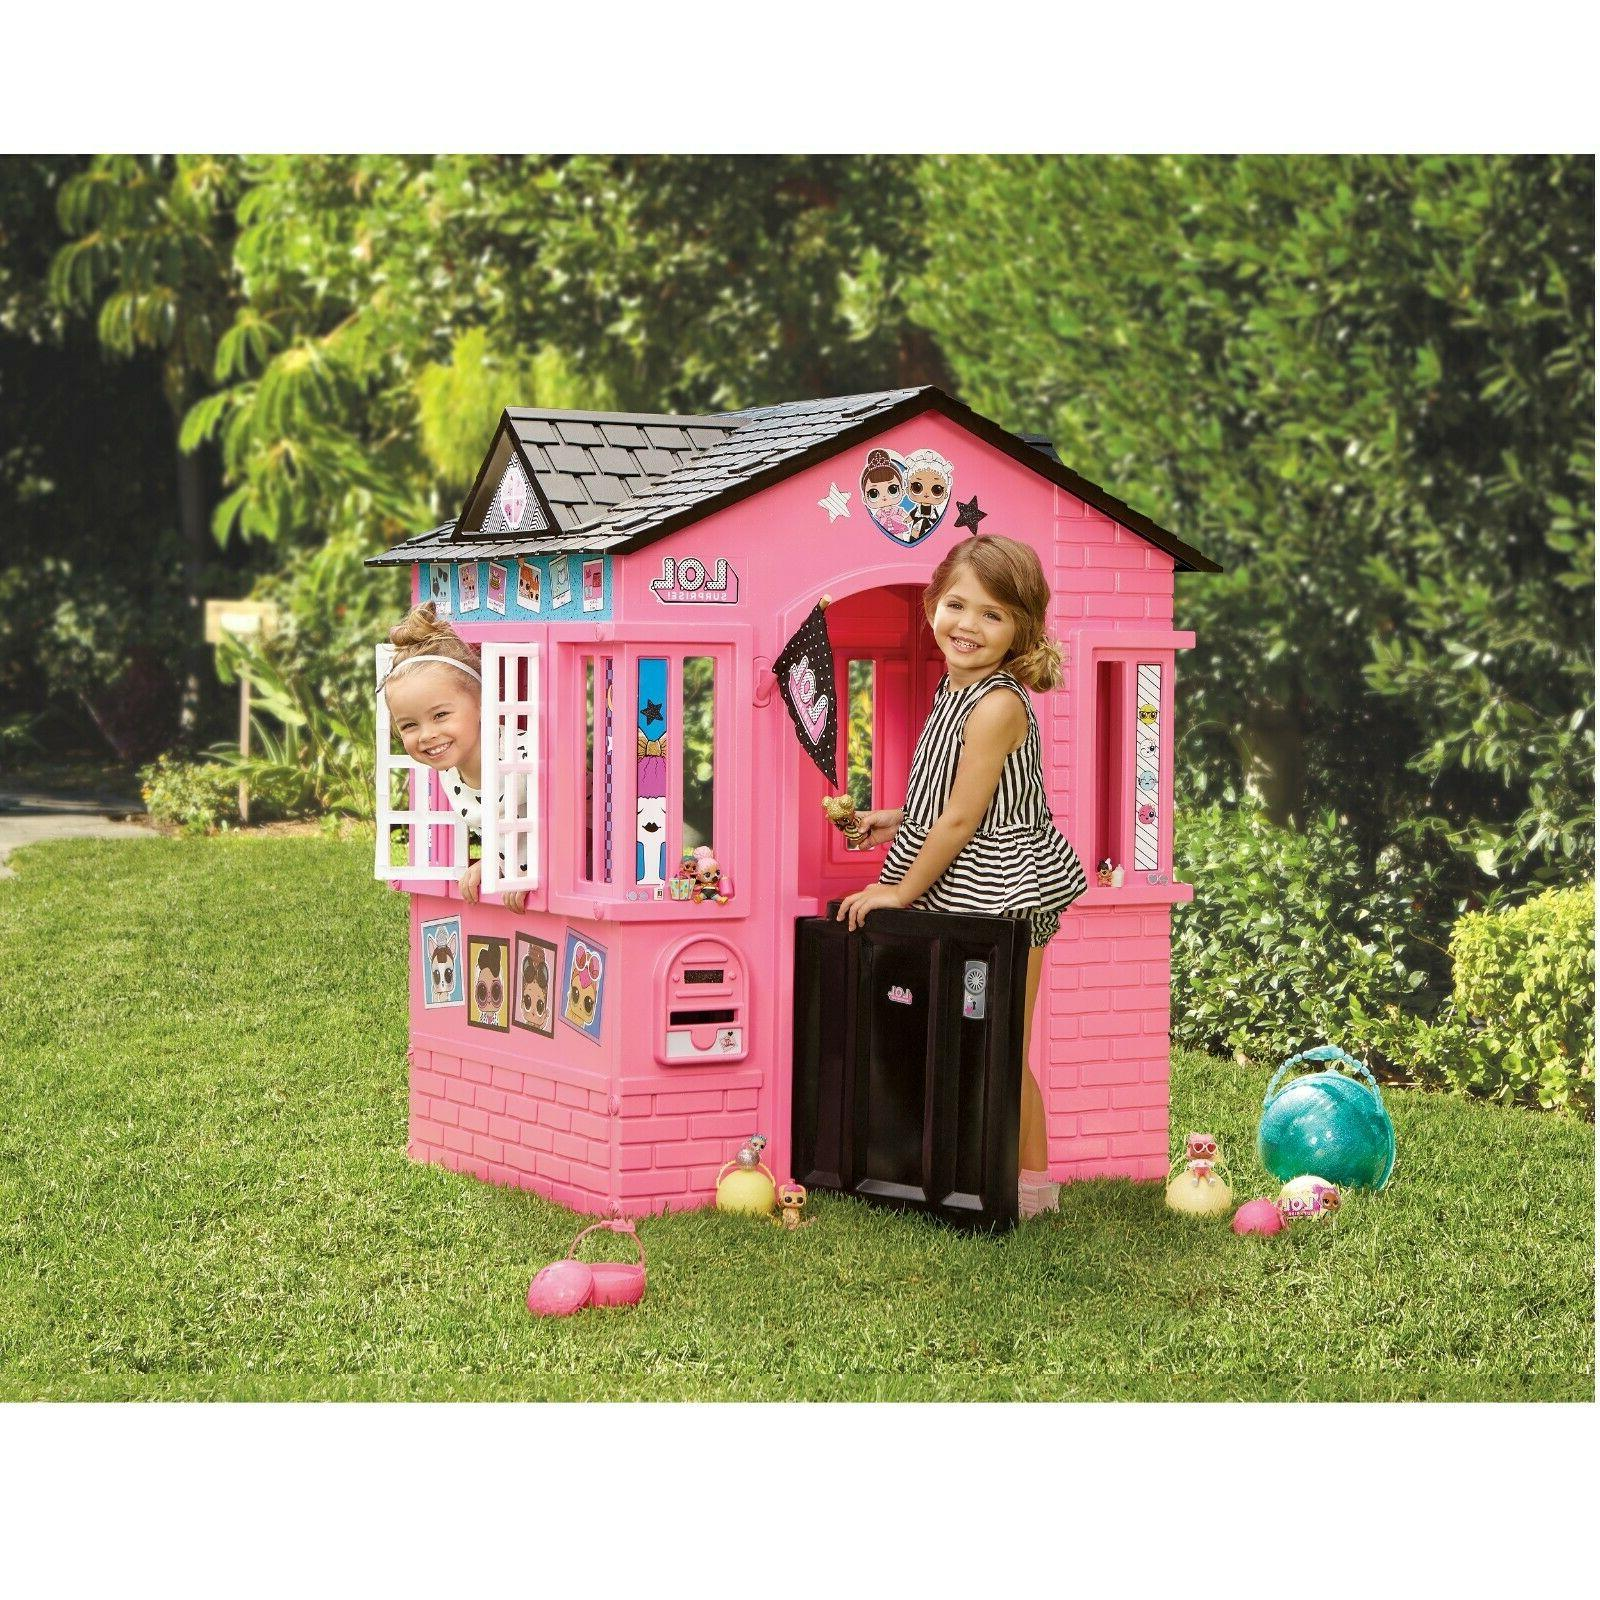 Kids Club House Pink Outdoor Plastic House Pretend